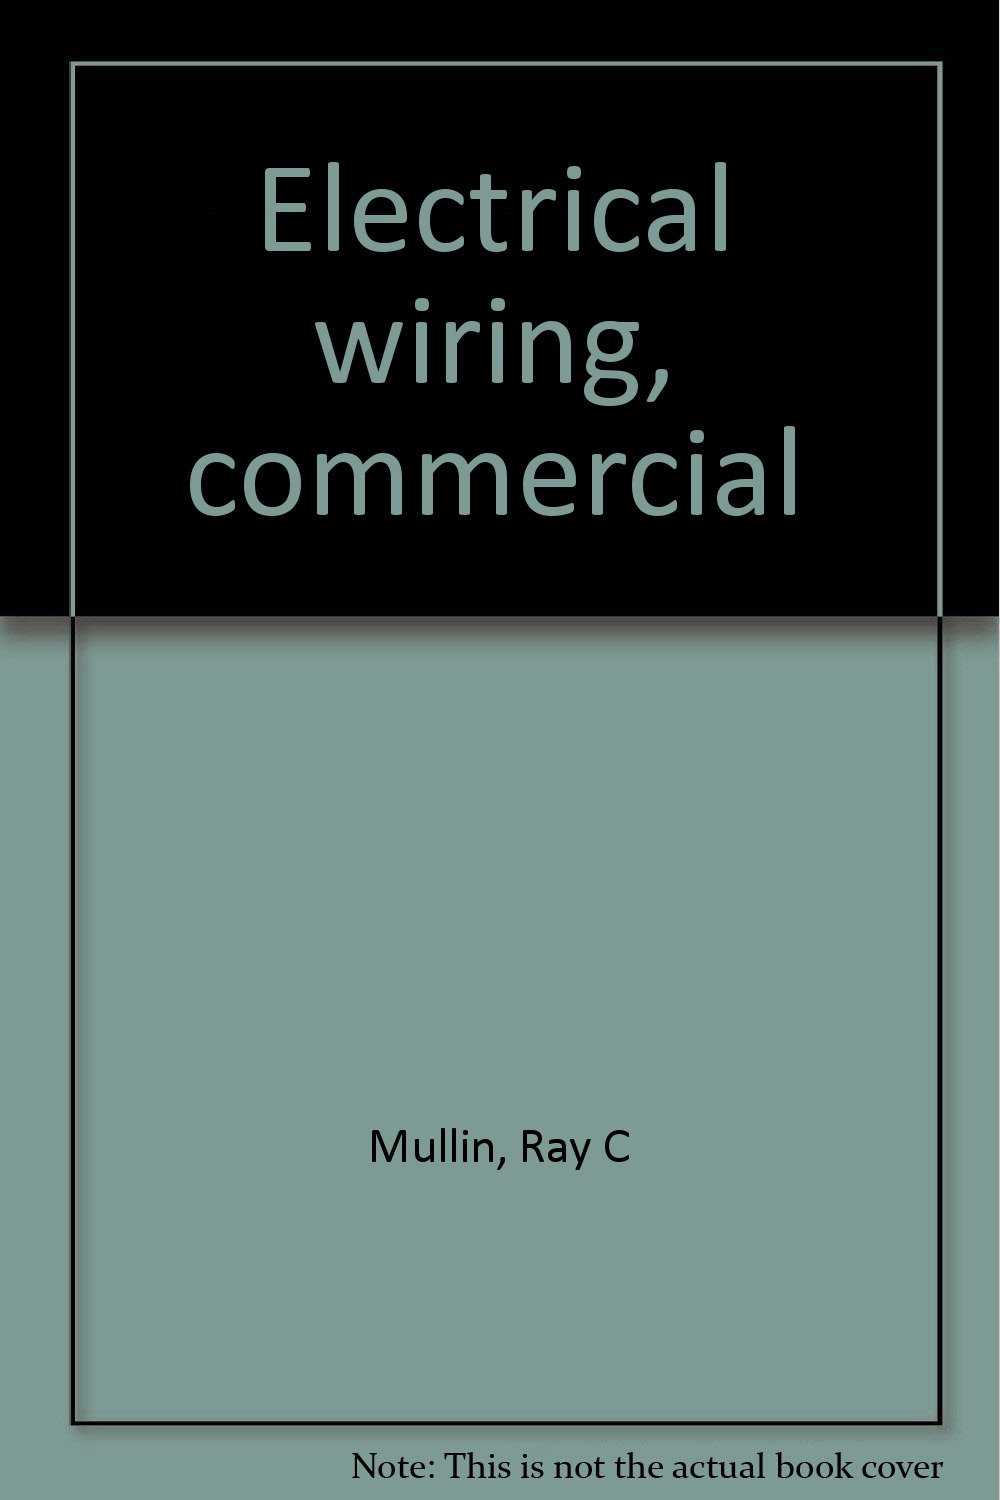 Amazon.in: Buy Electrical wiring, commercial Book Online at Low ...